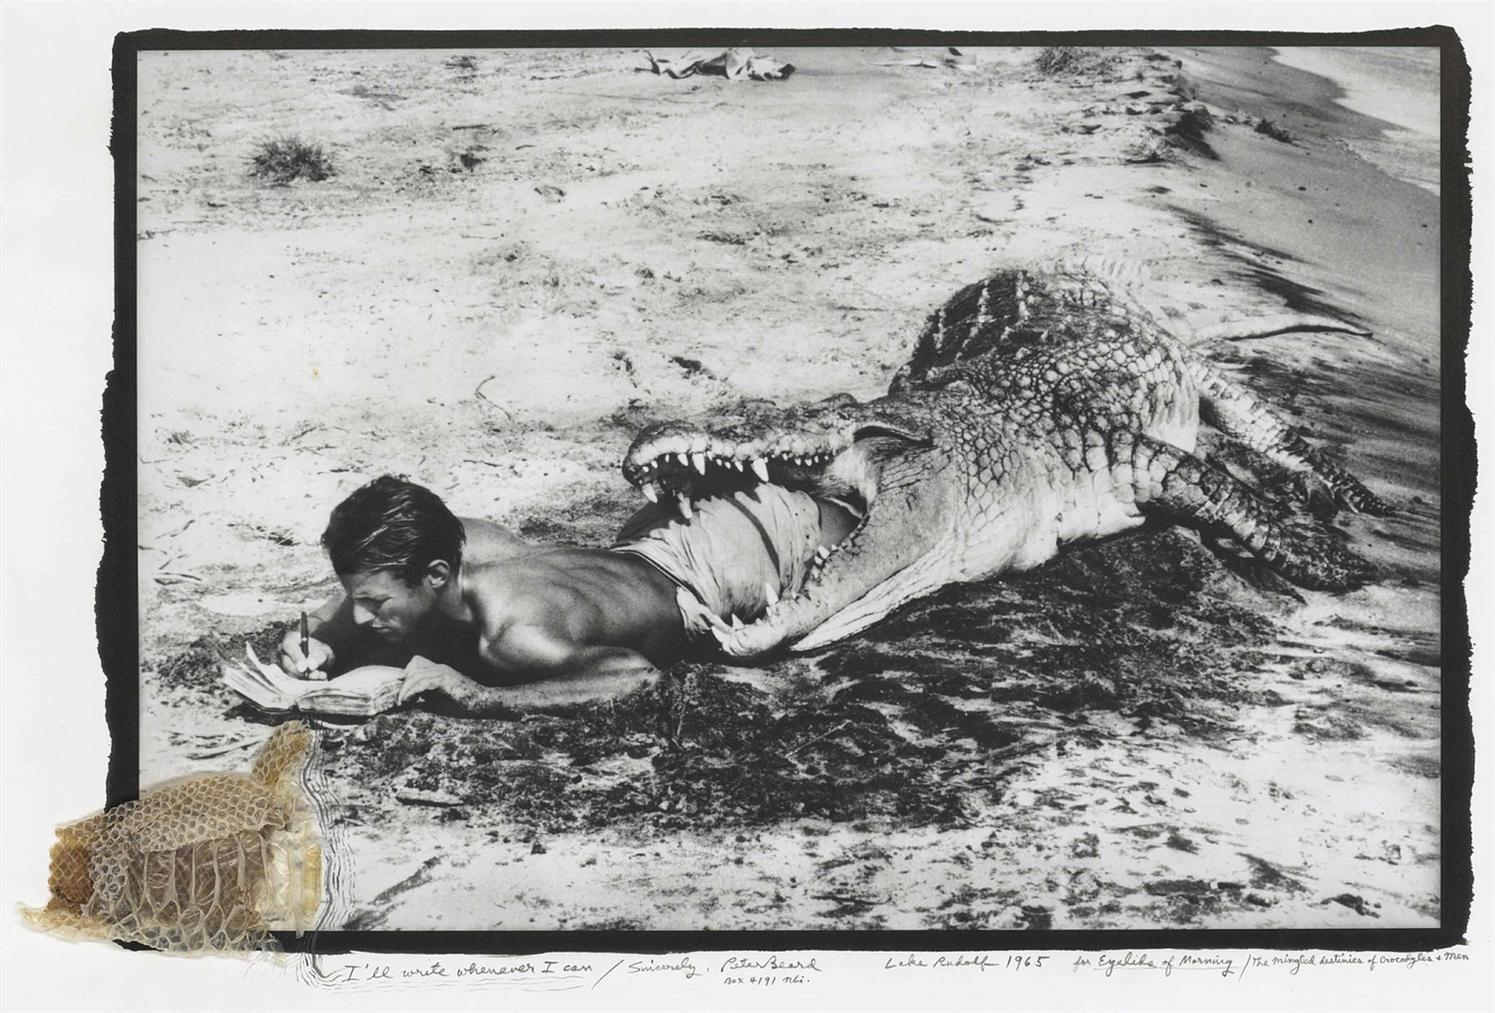 Peter Beard-Ill Write Whenever I Can...-1965